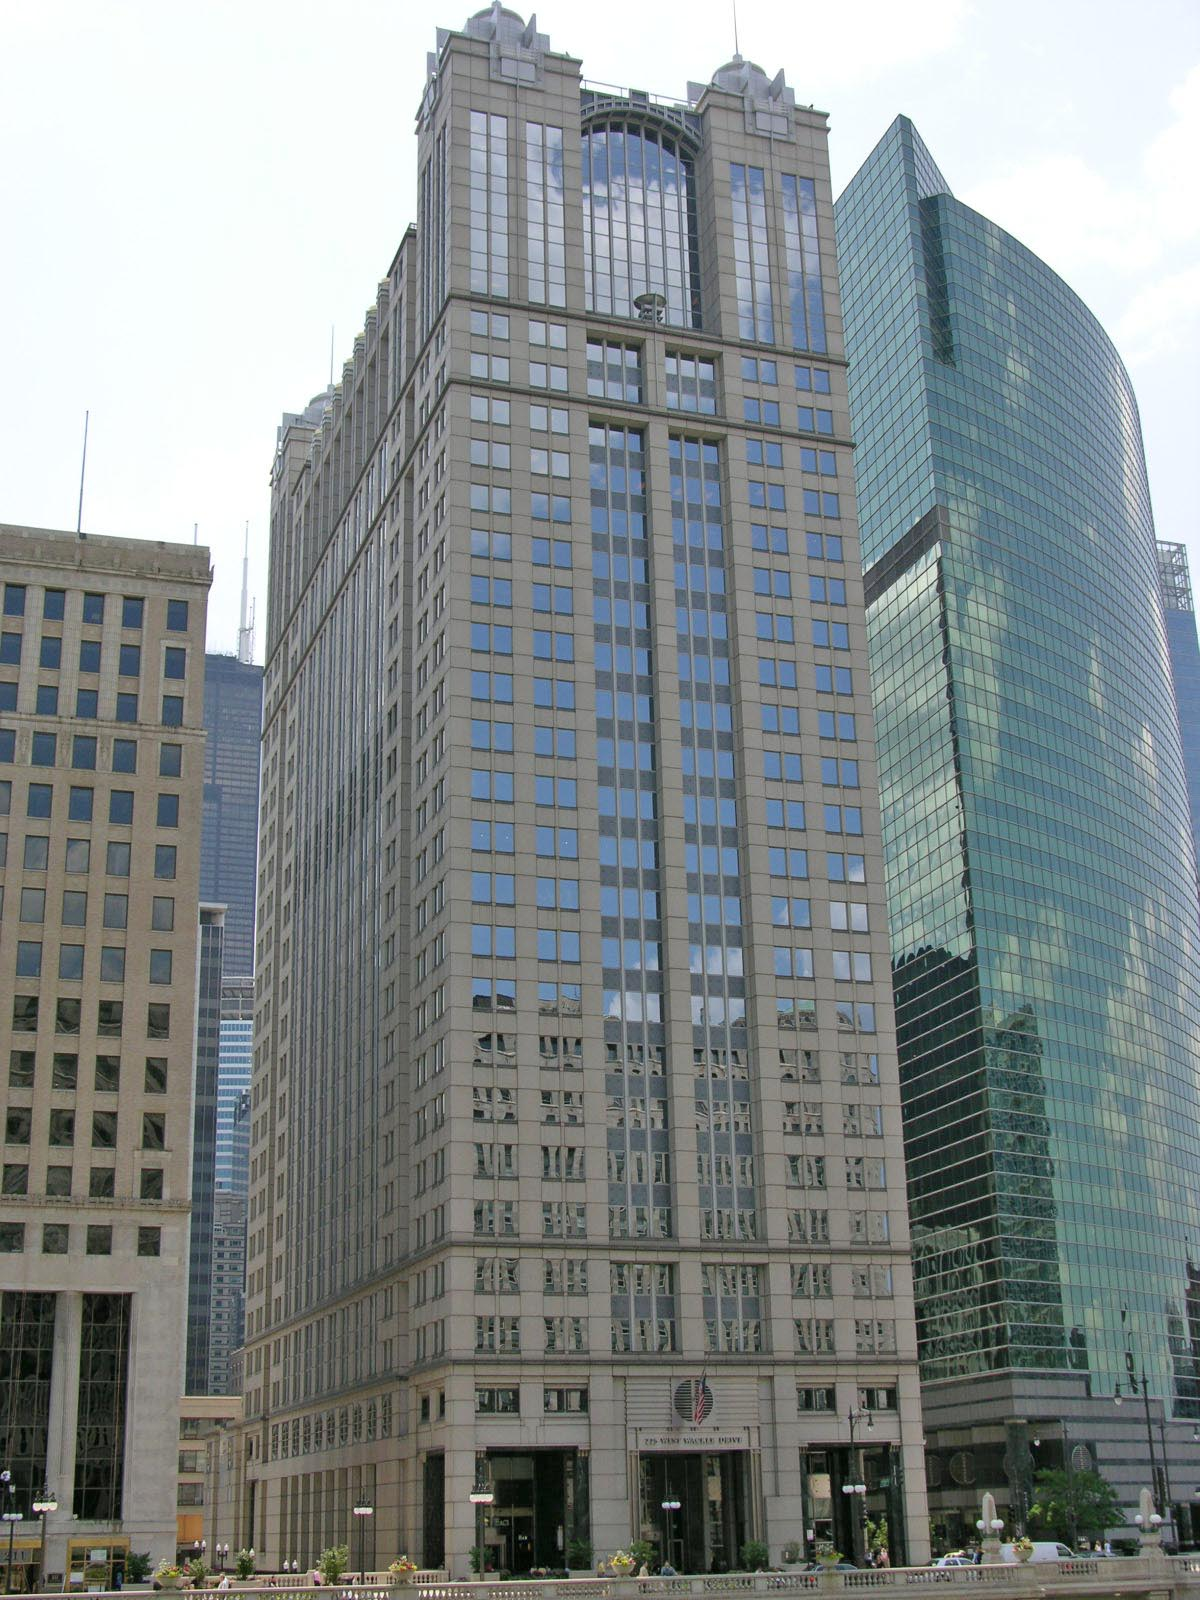 225 West Wacker Drive, Chicago, Illinois